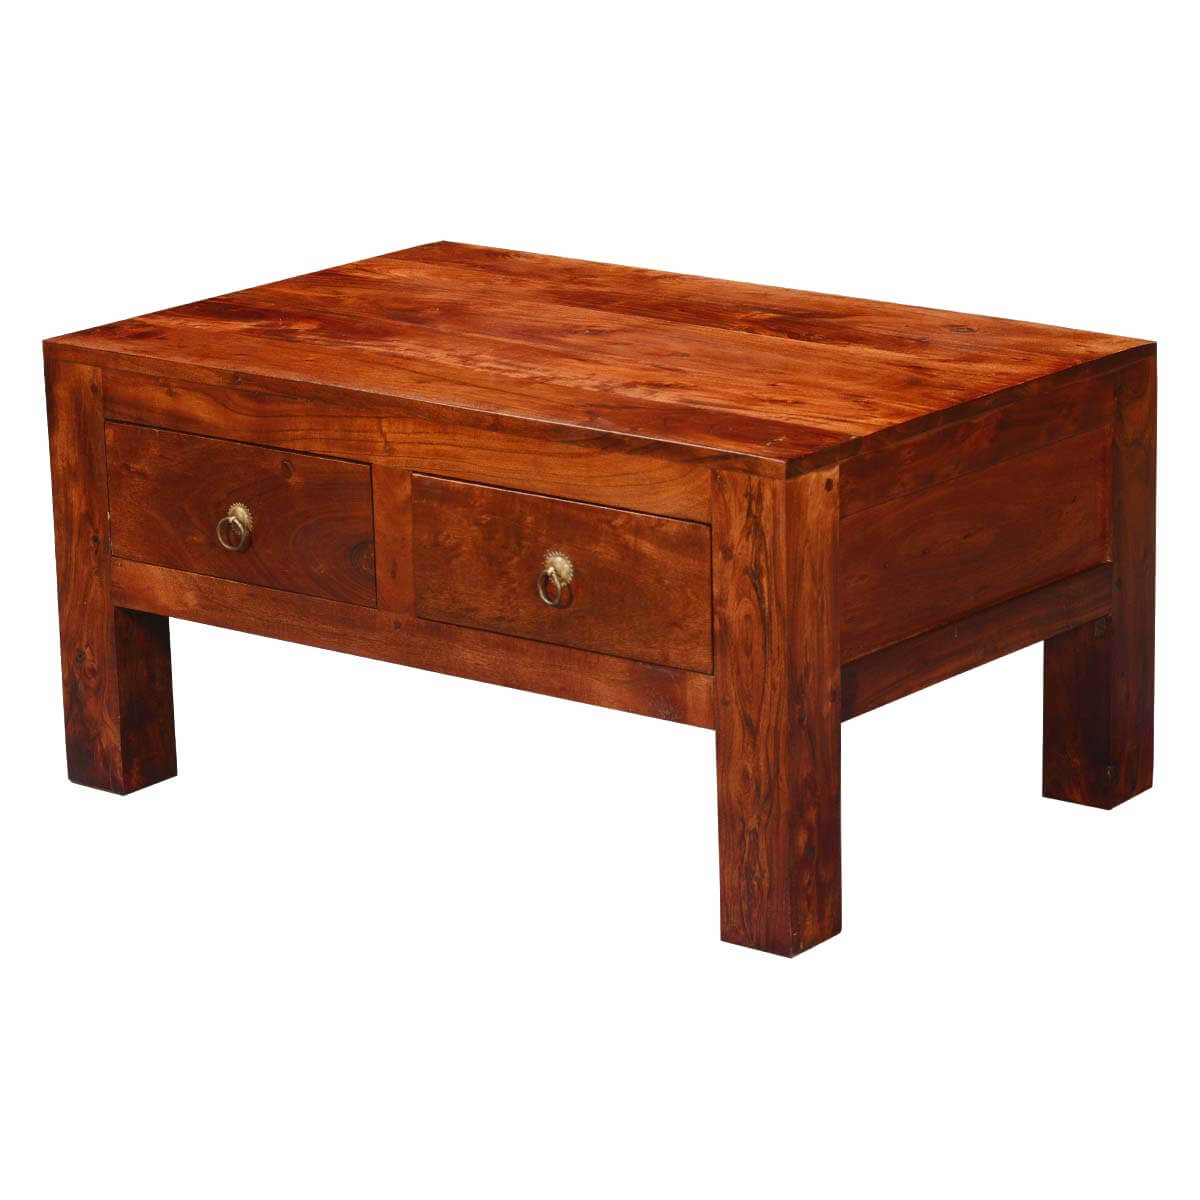 Superb img of Modern Simplicity Acacia Wood 4 Drawer Chest Coffee Table with #B28C19 color and 1200x1200 pixels